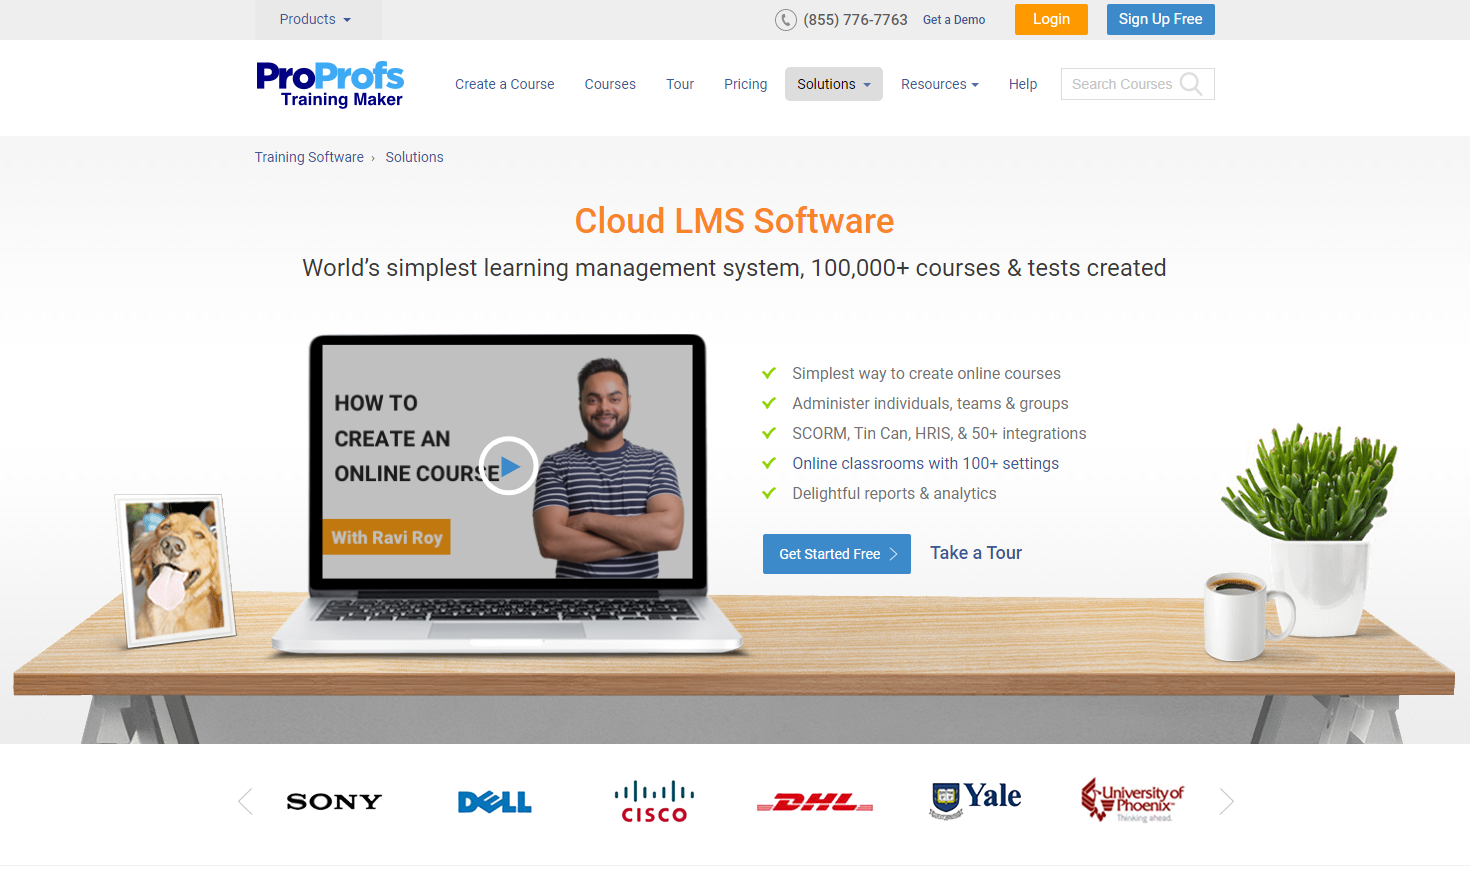 10 LMS Software for Simplifying Online Education During COVID-19 1